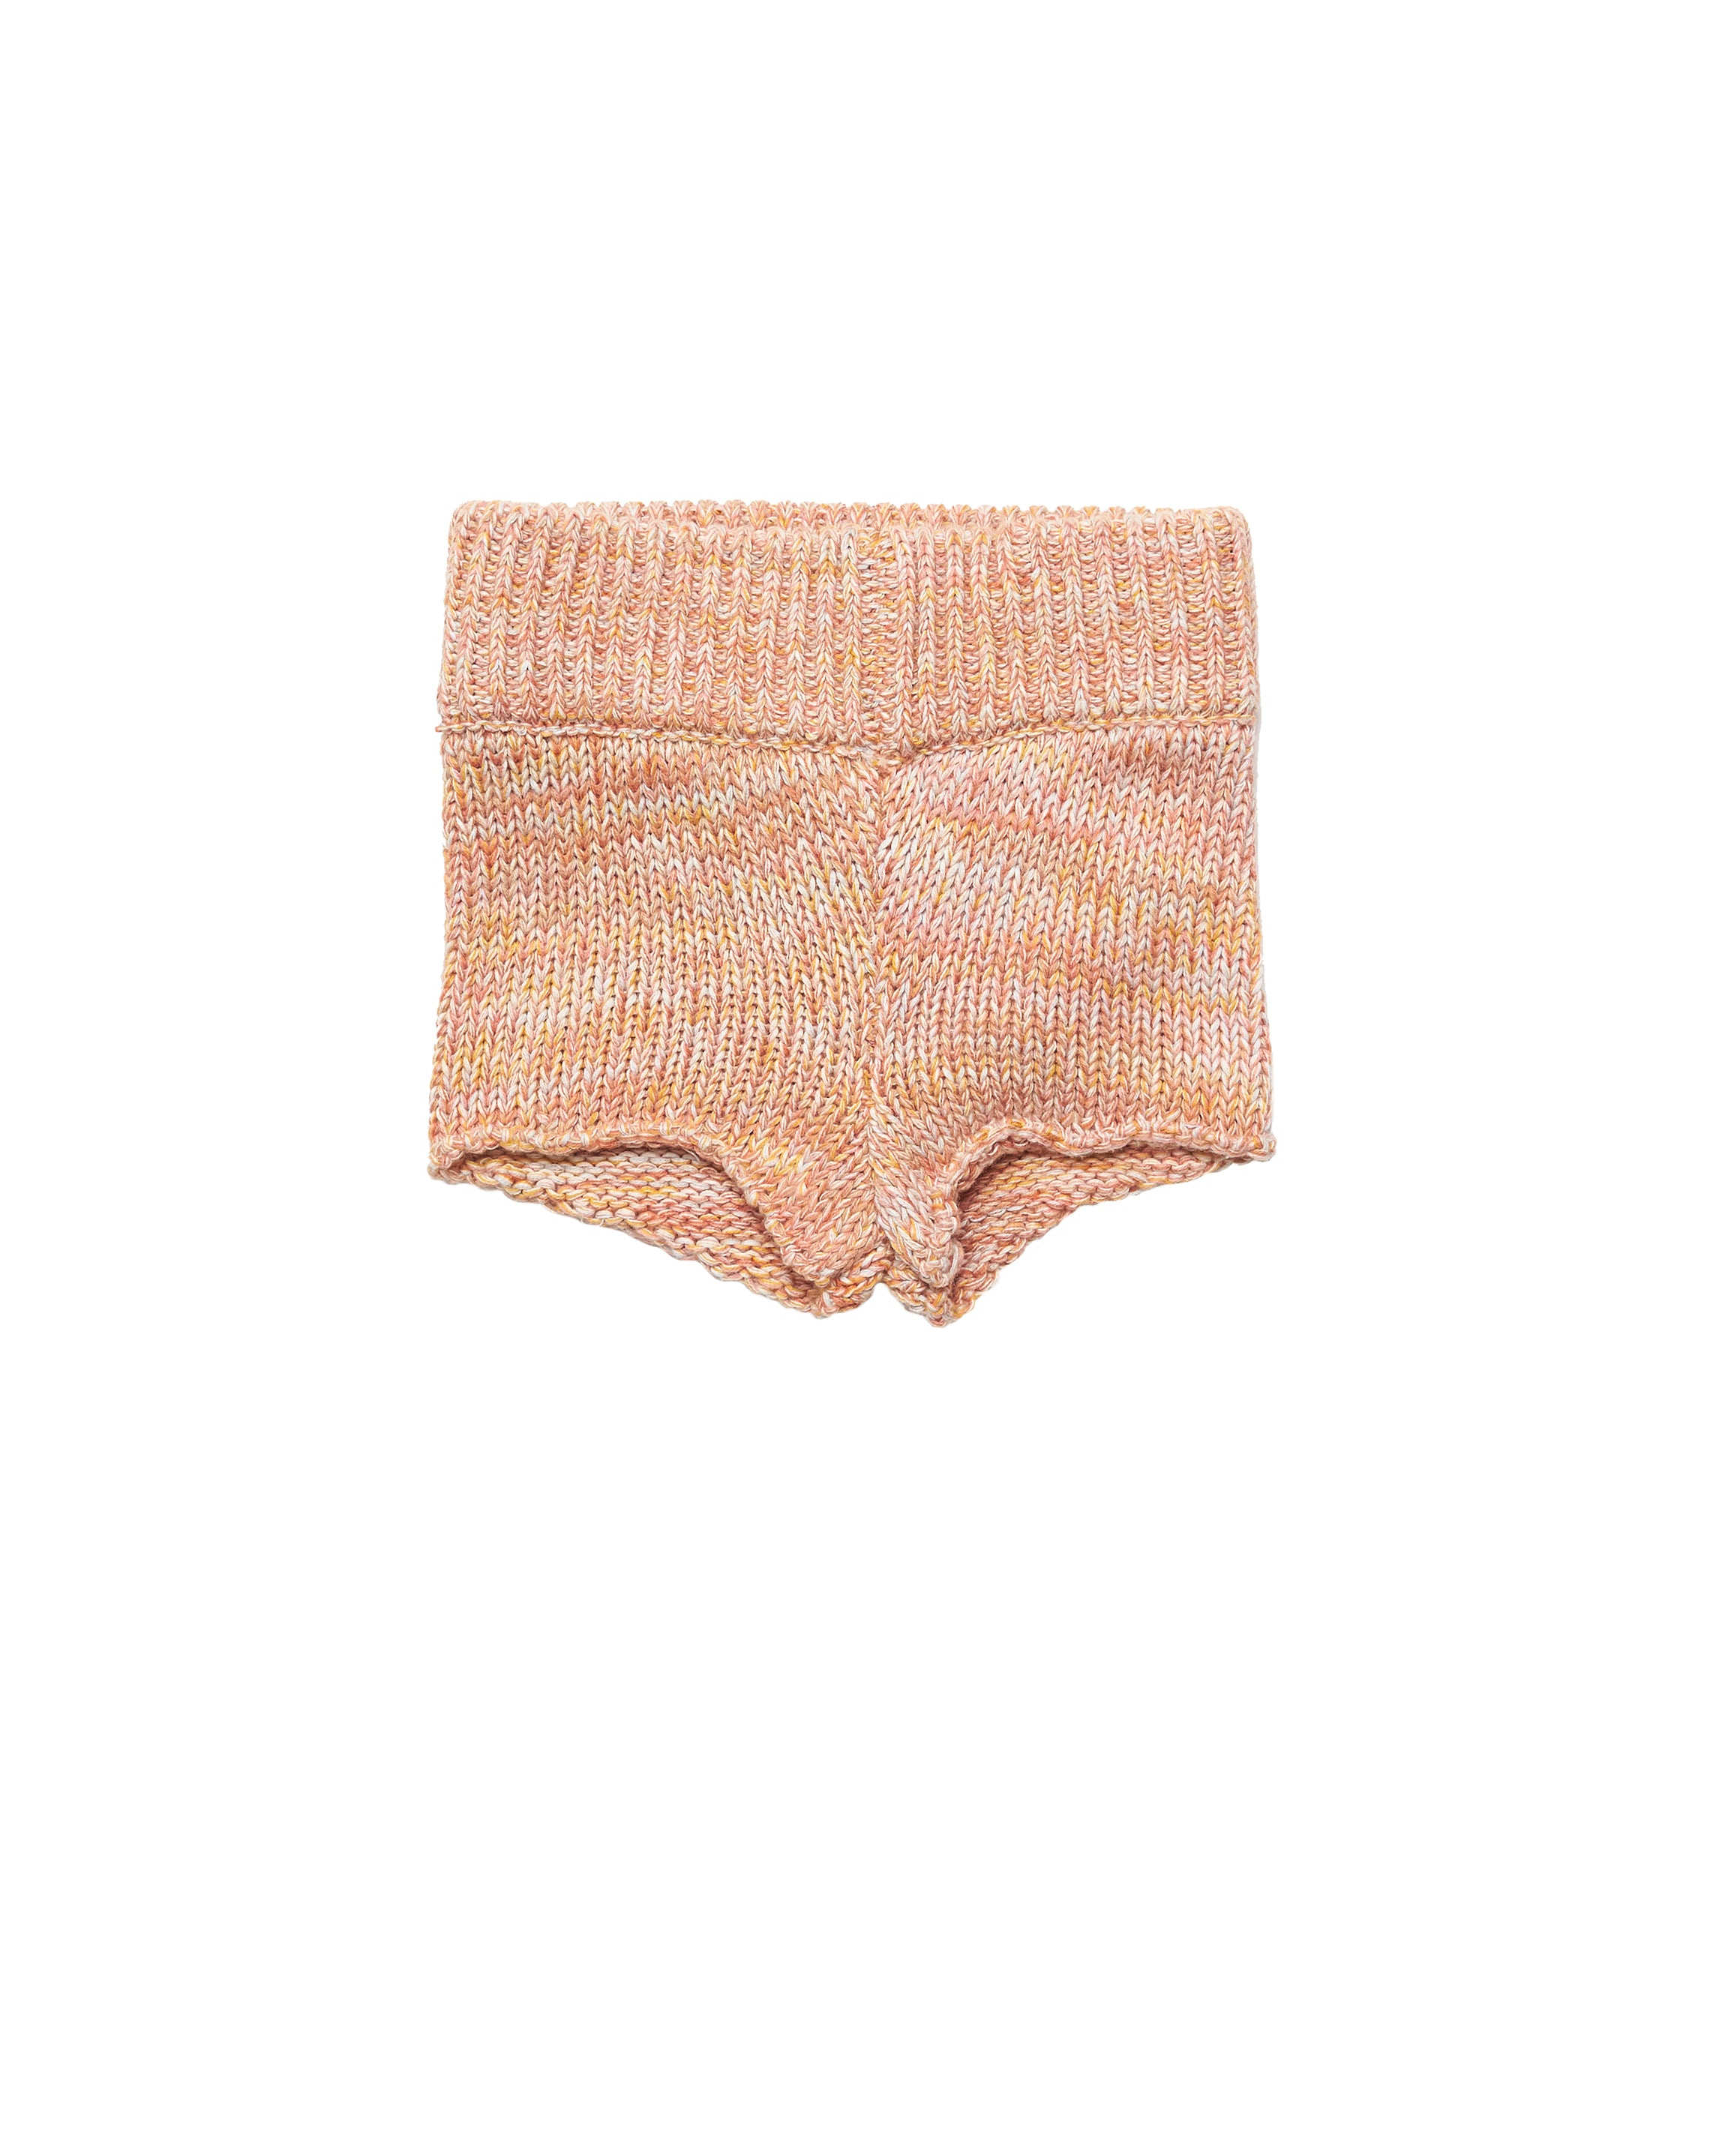 Millk Australia Heirloom Knit Baby & Kid's Shorts | BIEN BIEN